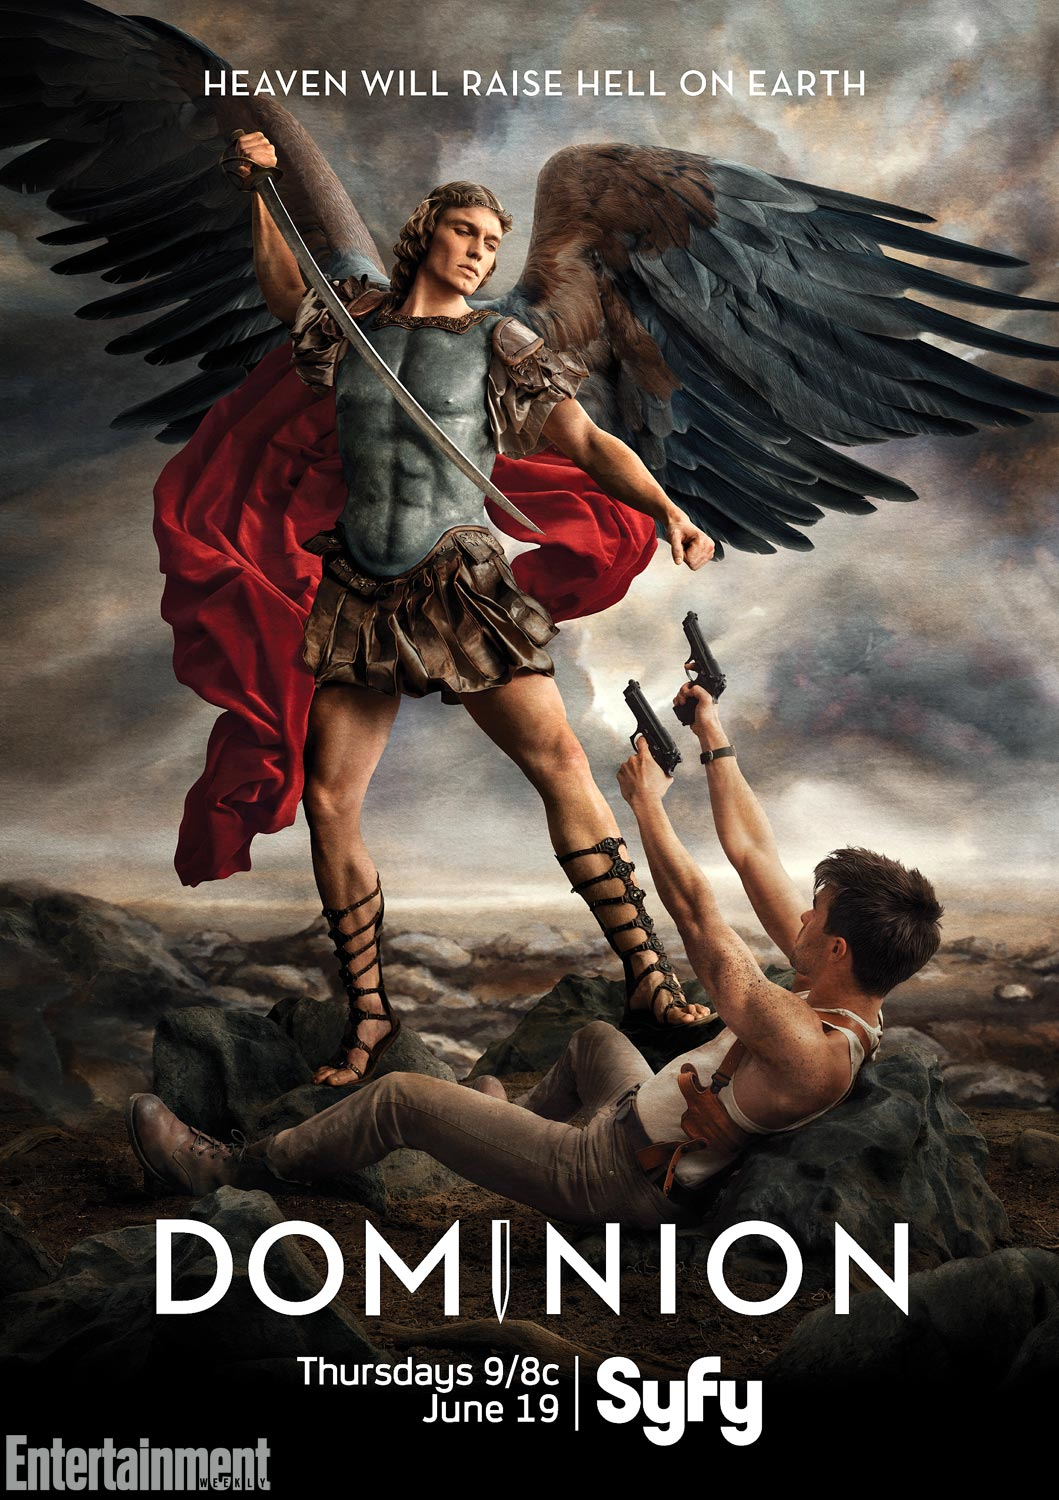 Heaven Raises Hell On Earth In Awesome First Poster For Syfy's Dominion